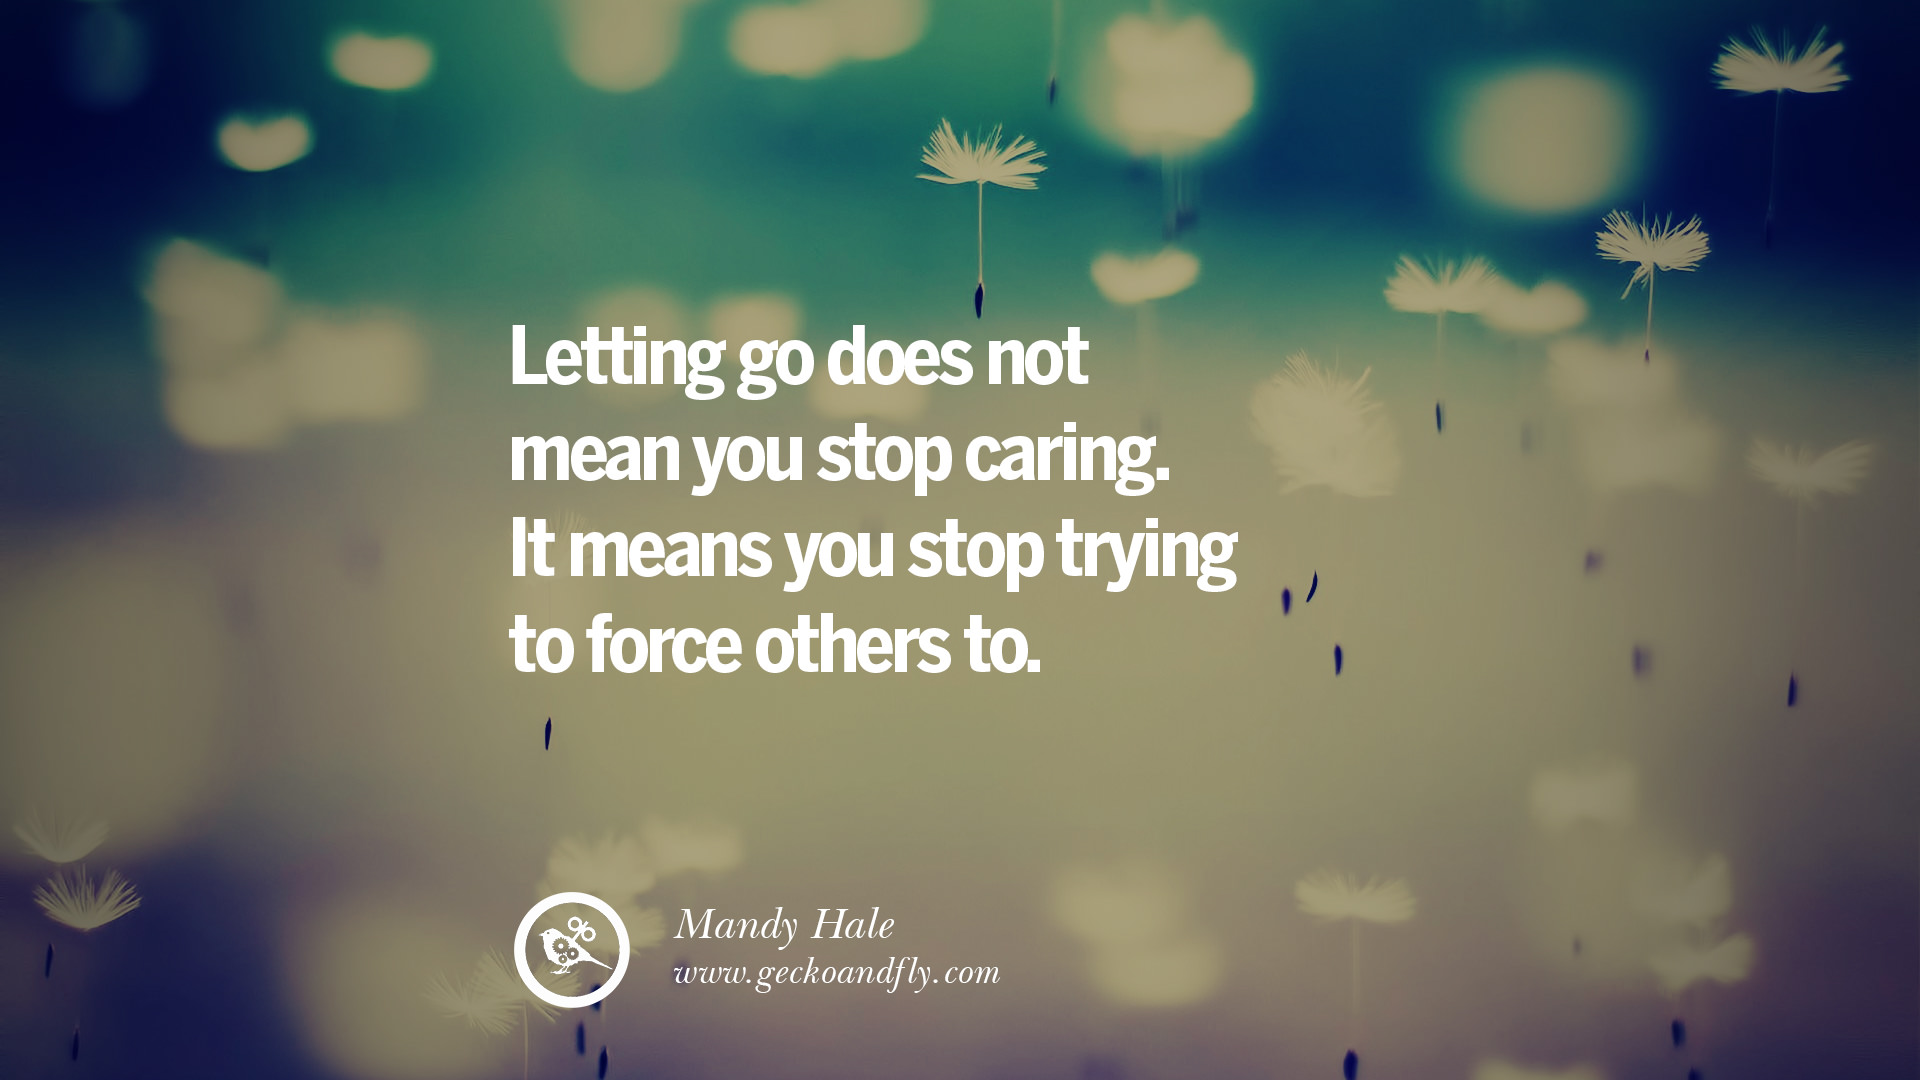 Quotes Letting Go Interesting 50 Quotes About Moving On And Letting Go Of Relationship And Love